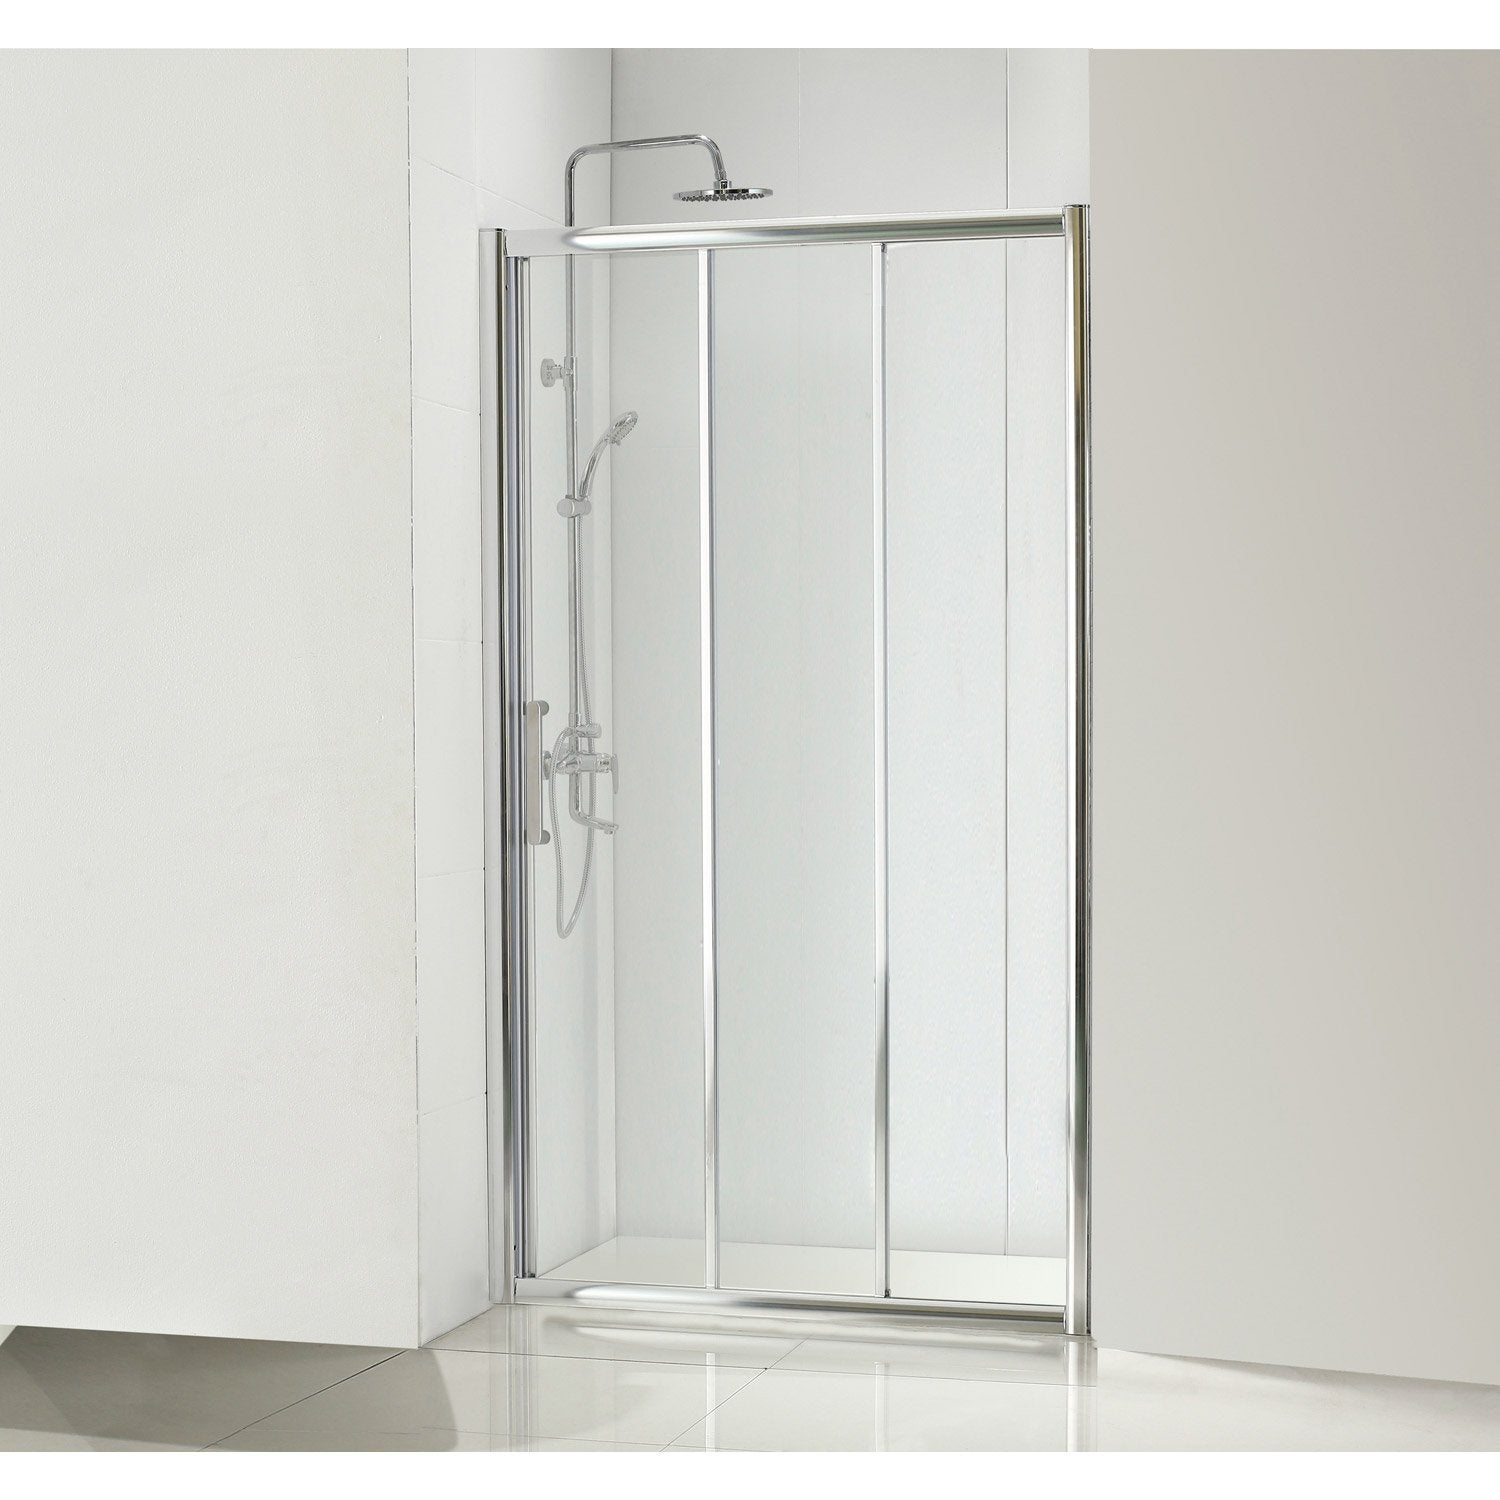 porte de douche coulissante 90 cm transparent quad. Black Bedroom Furniture Sets. Home Design Ideas